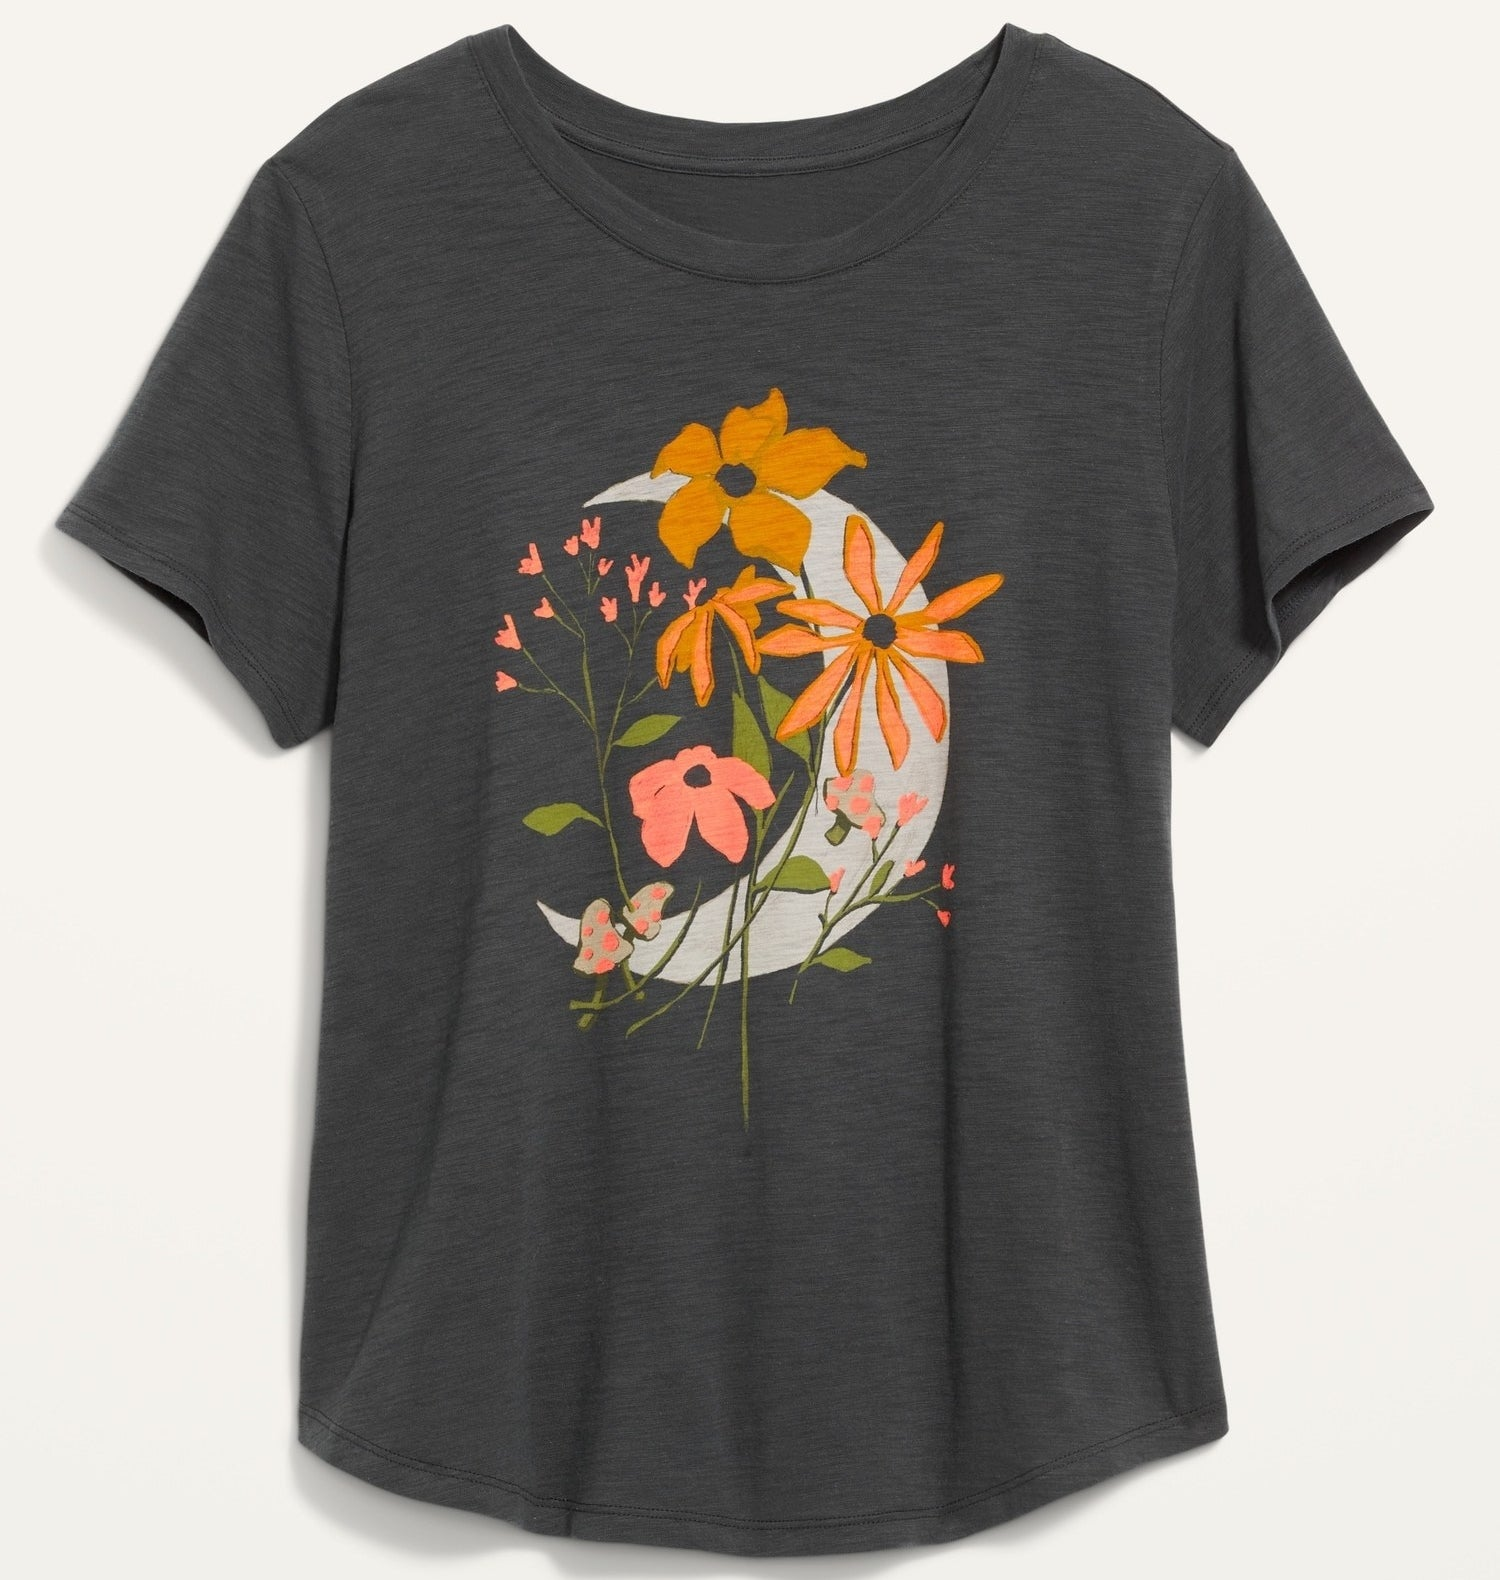 a t-shirt with a moon and flowers on it